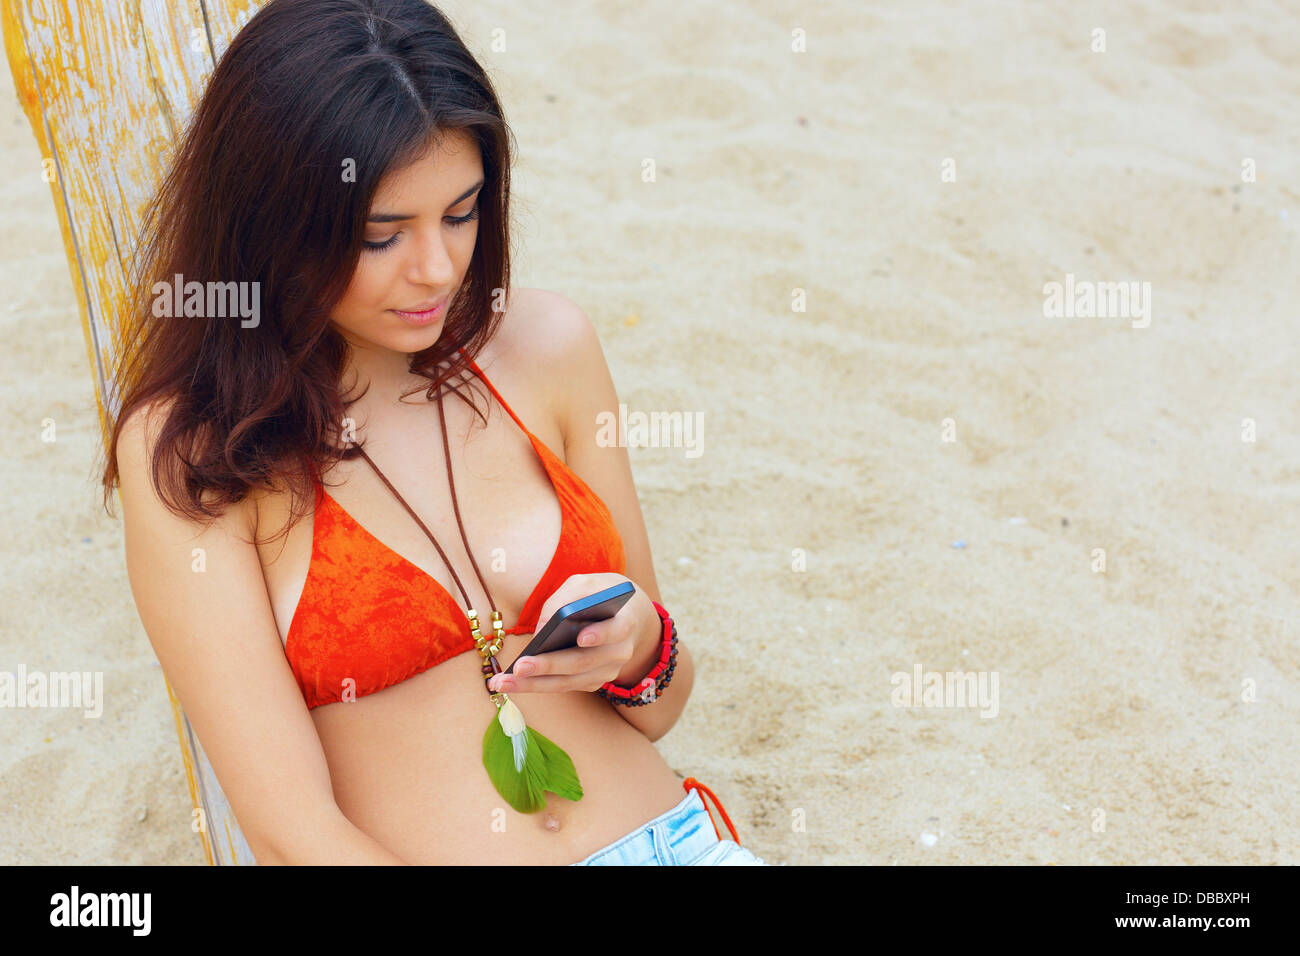 Young beautiful woman sitting on the beach with her smartphone - Stock Image